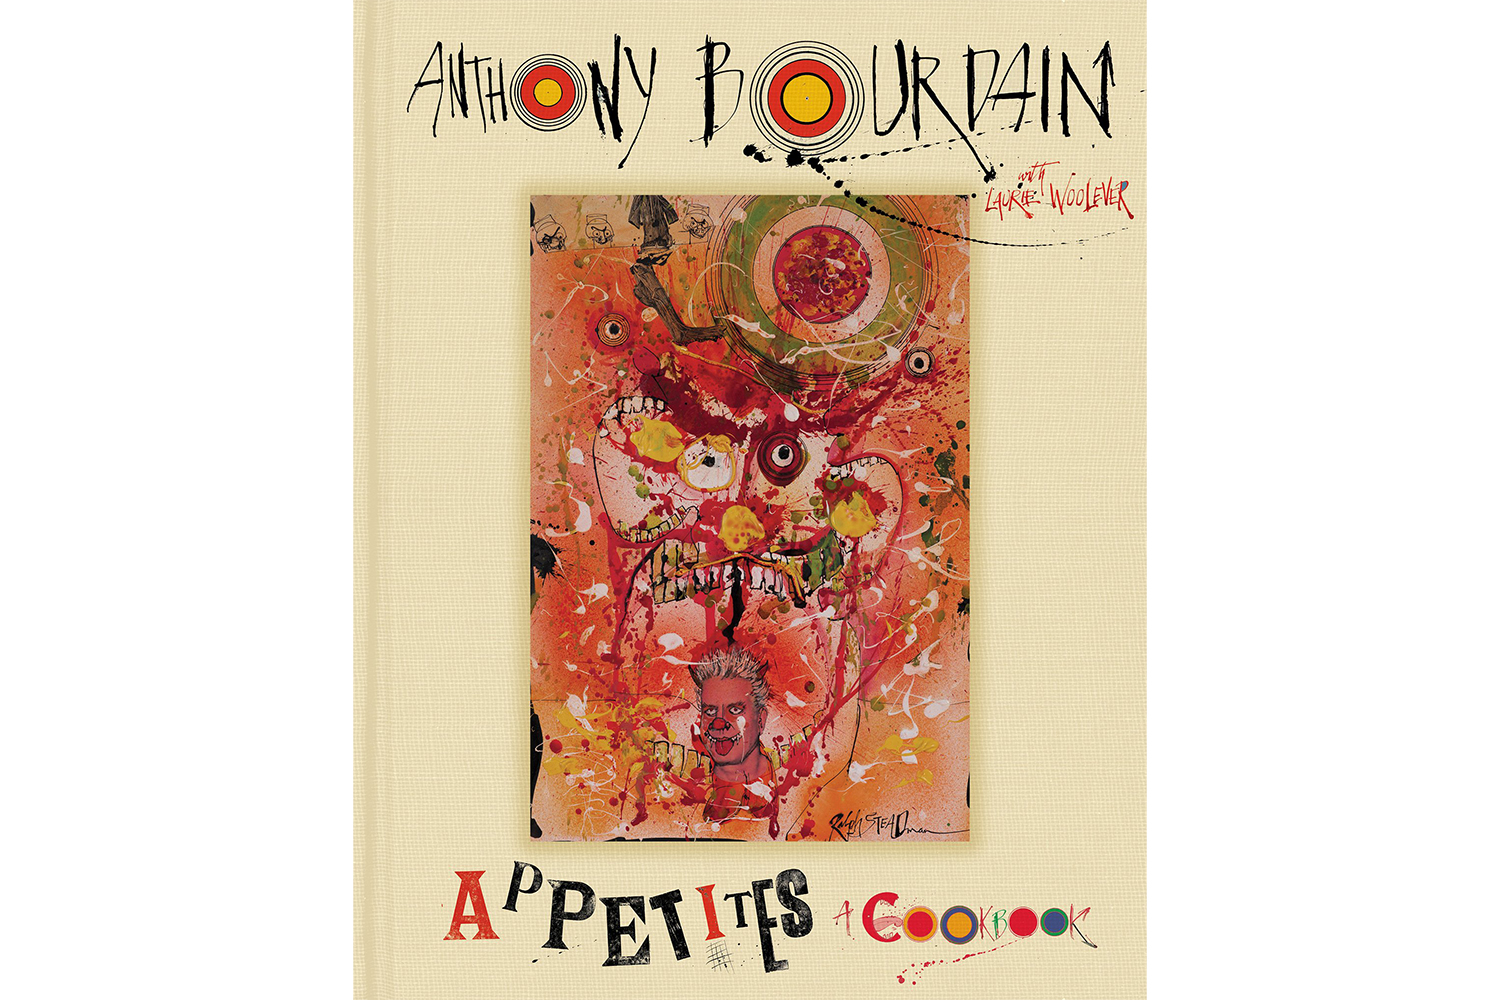 Anthony Bourdain Announces 'Appetites' Cookbook With Cover